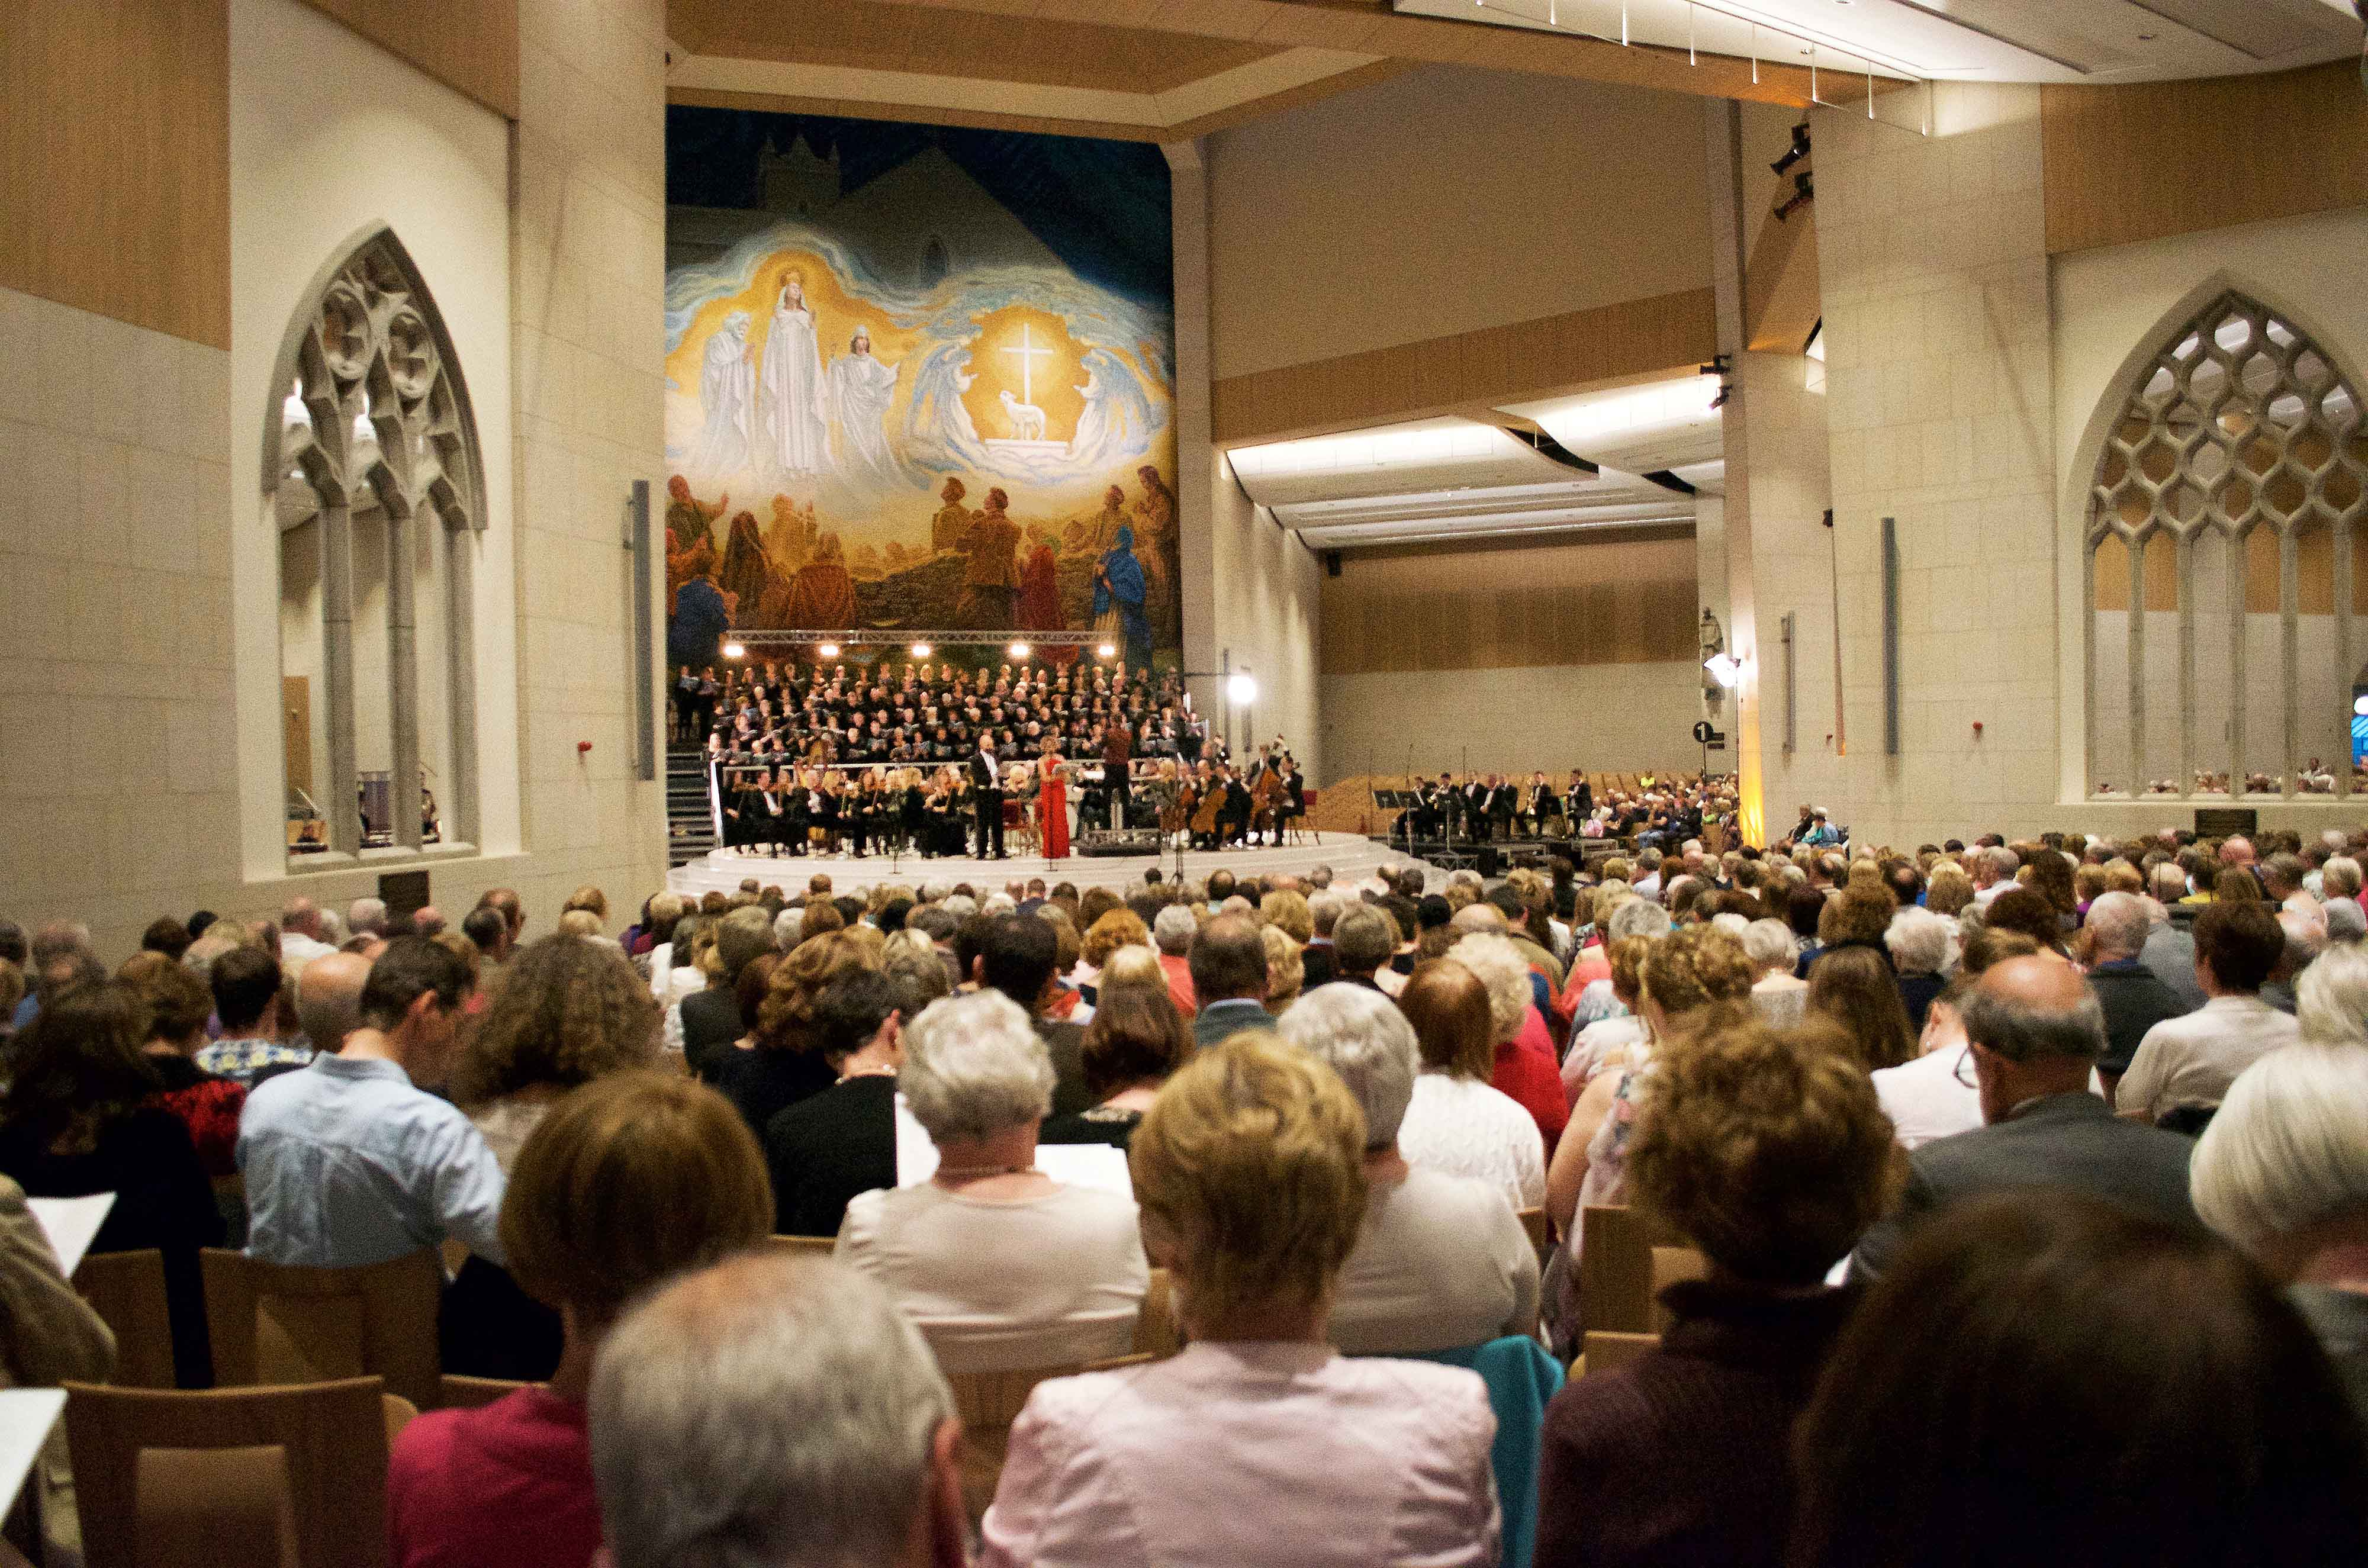 A Concert For Peace, presented by the Mayo International Choral Festival at Knock Basilica, May 14th, in association with the Western Development Commission